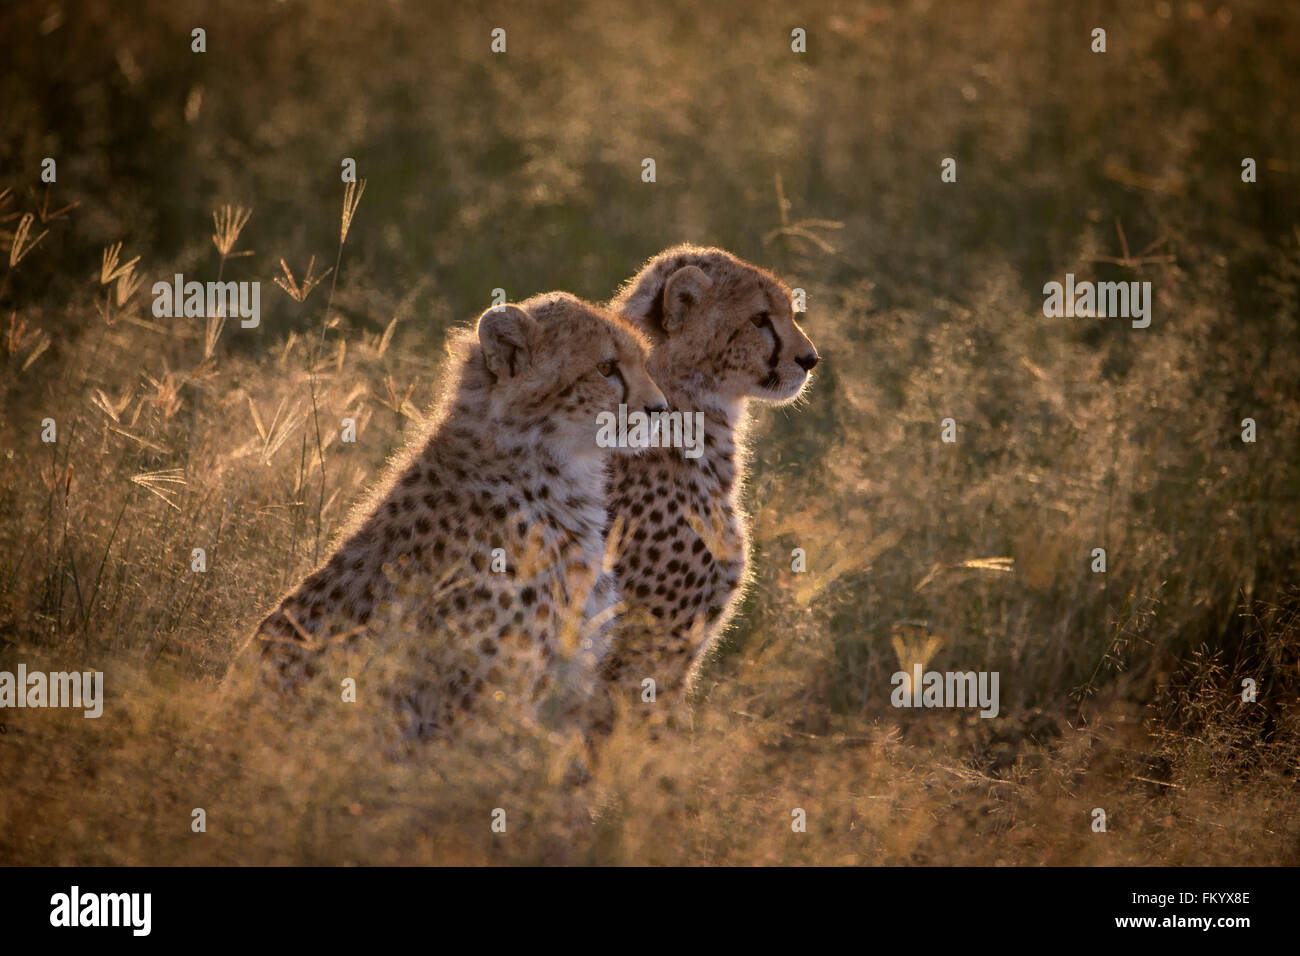 Juvenile Cheetah cubs backlit in the early morning sunlight - Stock Image